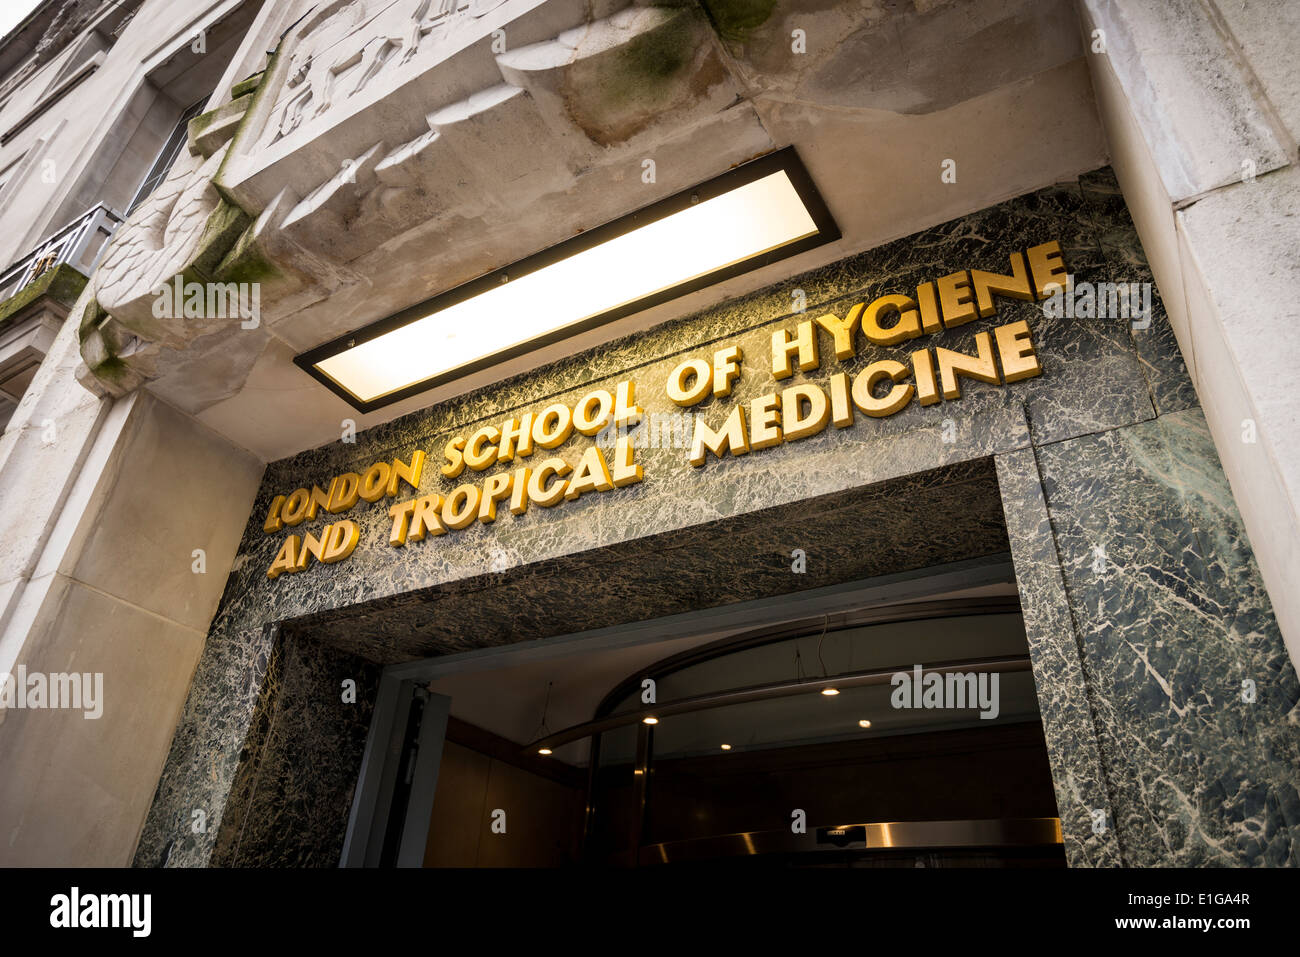 The main entrance to London School of Hygiene and Tropical Medicine in London, UK Stock Photo